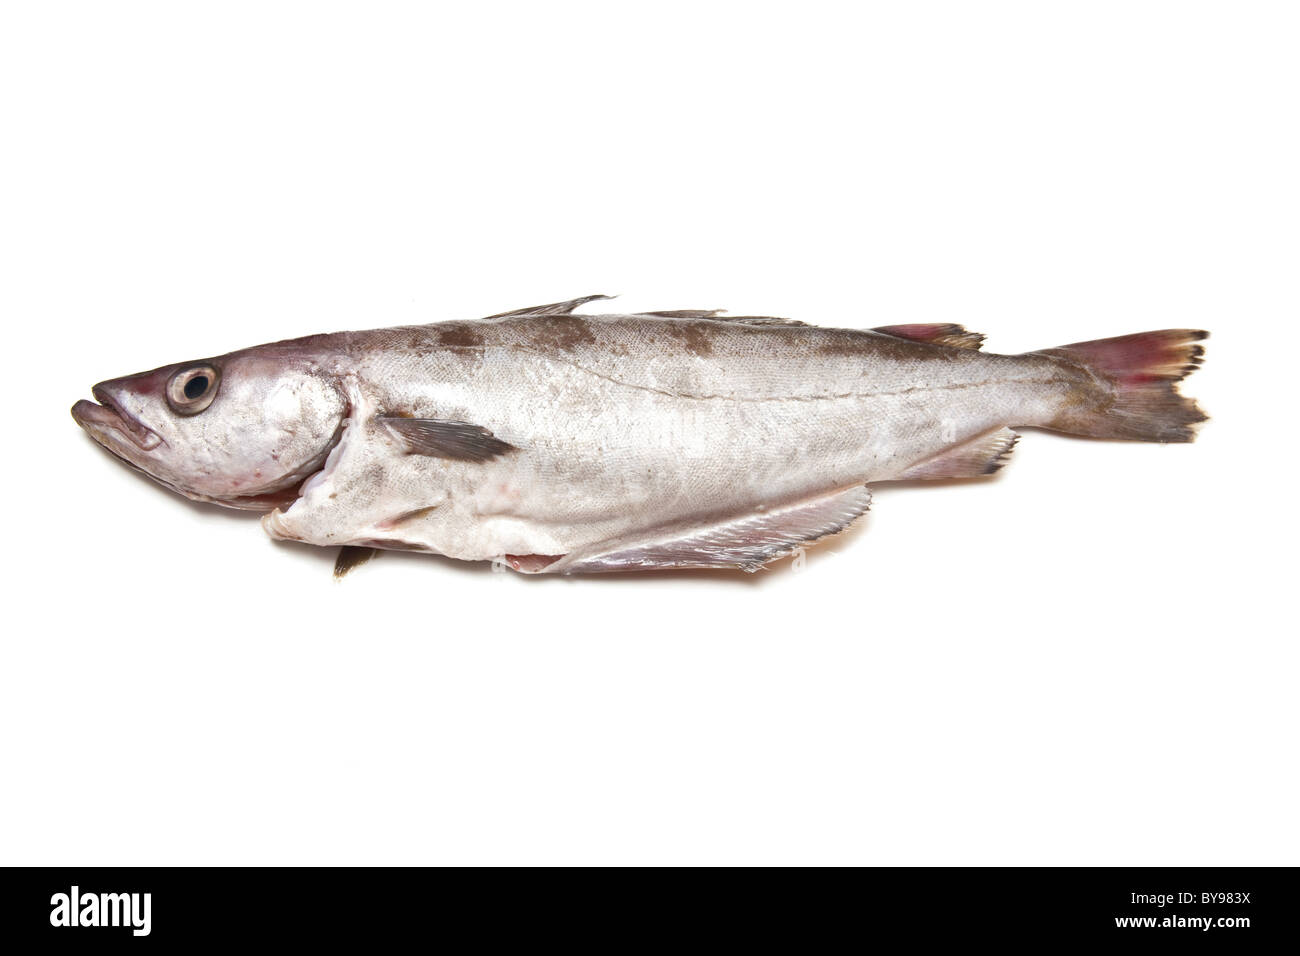 Pollock or Pollack fish isolated on a white studio background. - Stock Image